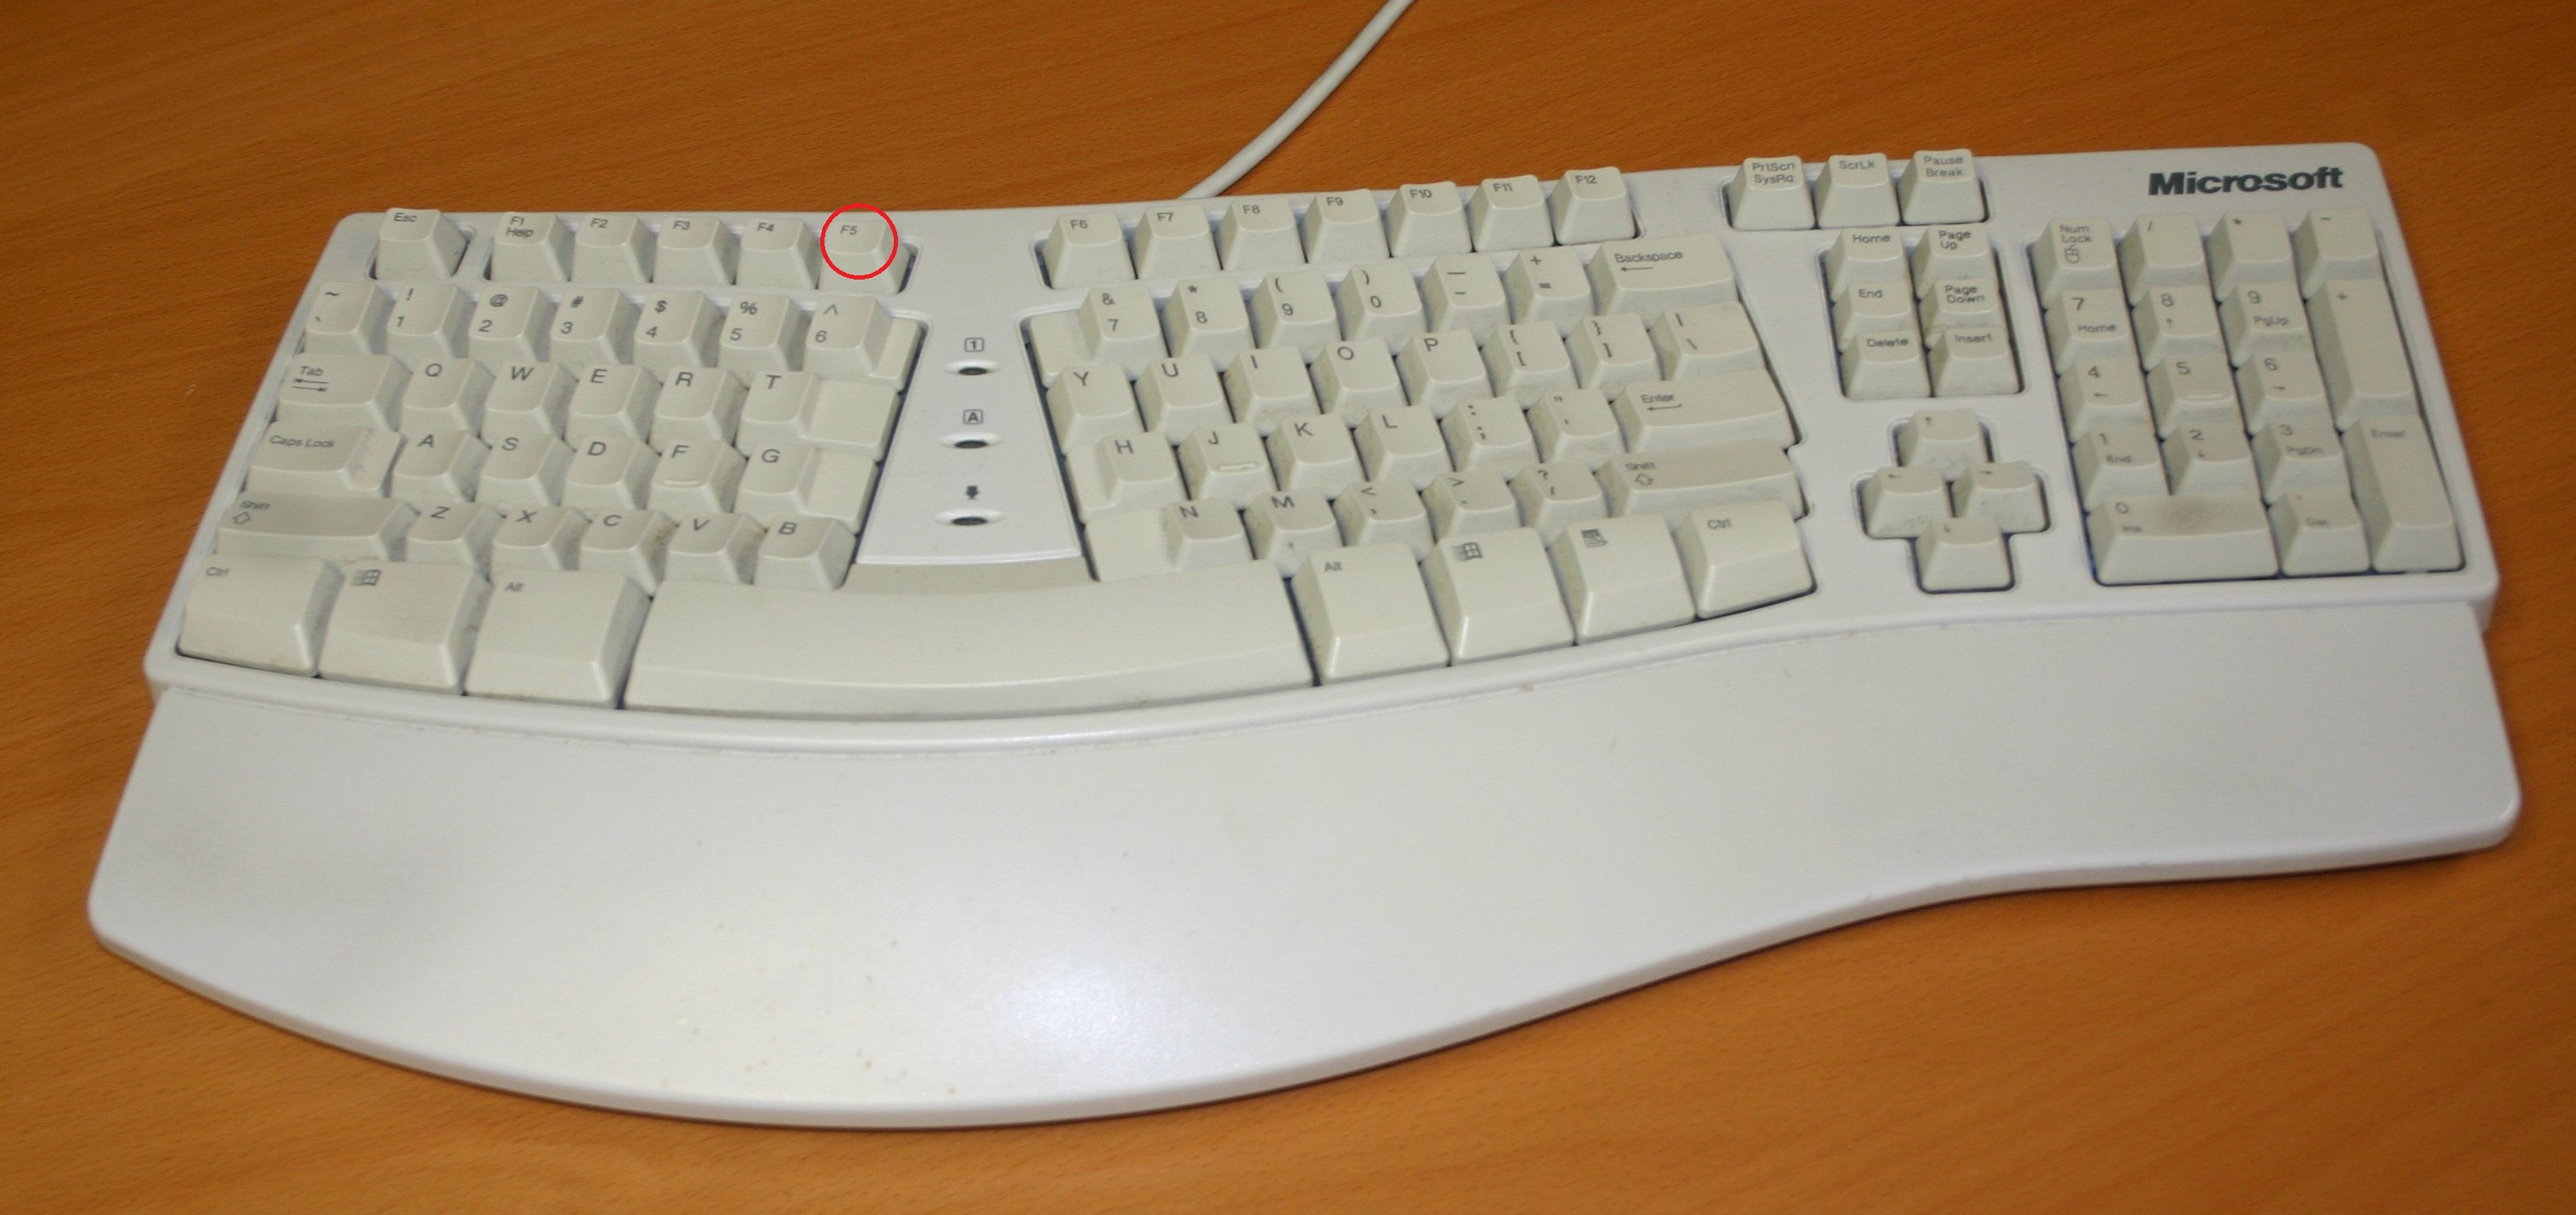 Microsoft natural keyboard.jpg